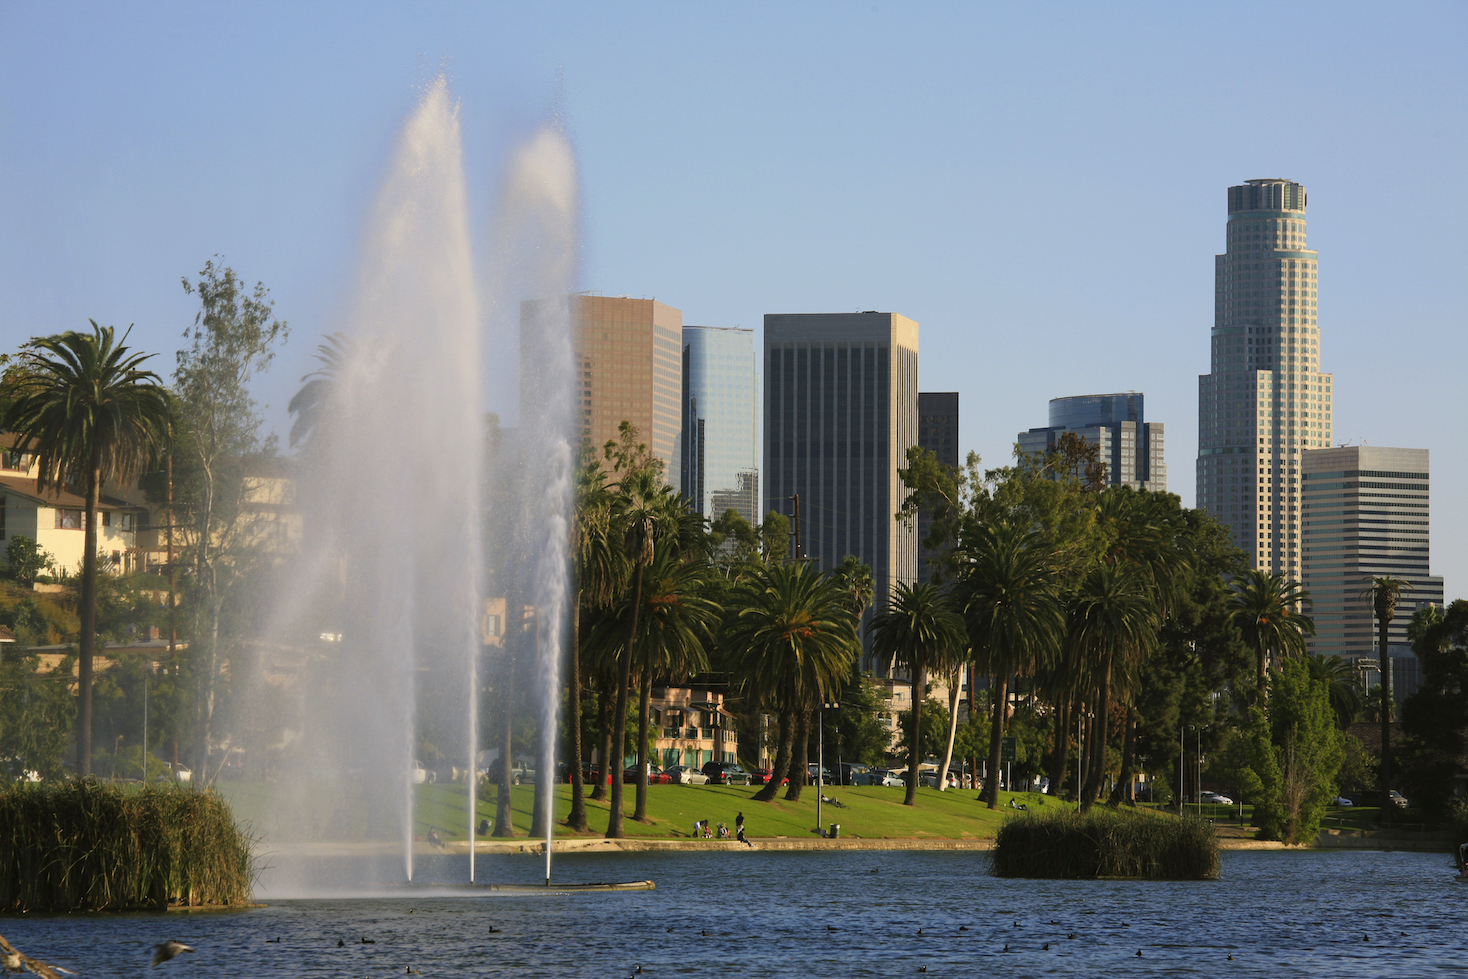 Water conservation measures in the state of California have also significantly reduced electricity consumption and greenhouse gas emissions.